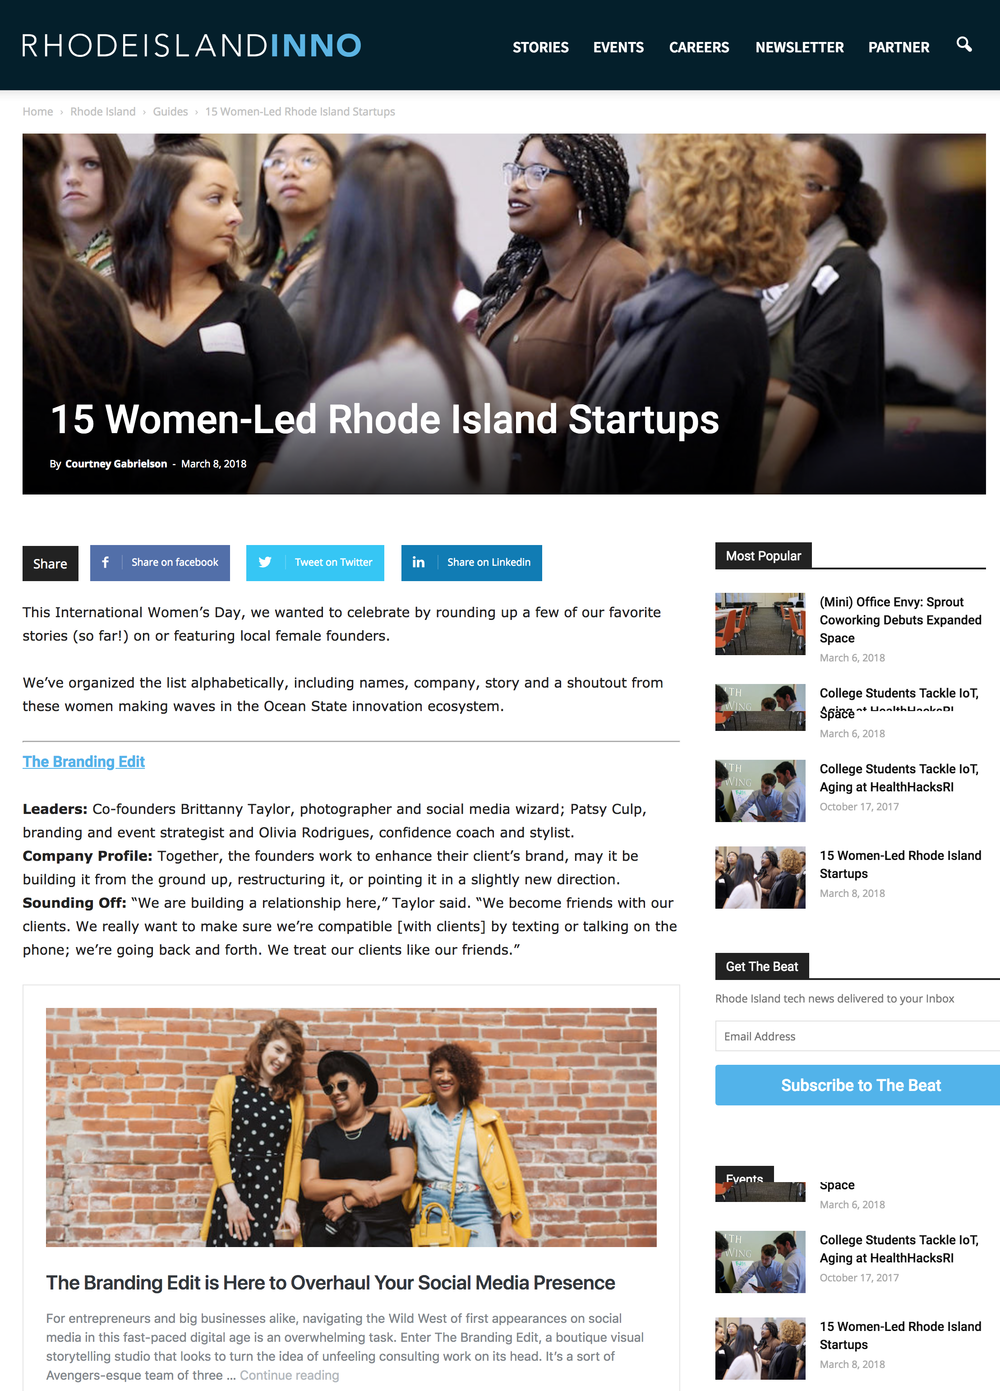 screencapture-americaninno-rhodeisland-guides-rhodeisland-15-women-led-rhode-island-startups-2018-03-13-10_28_50 copy.png